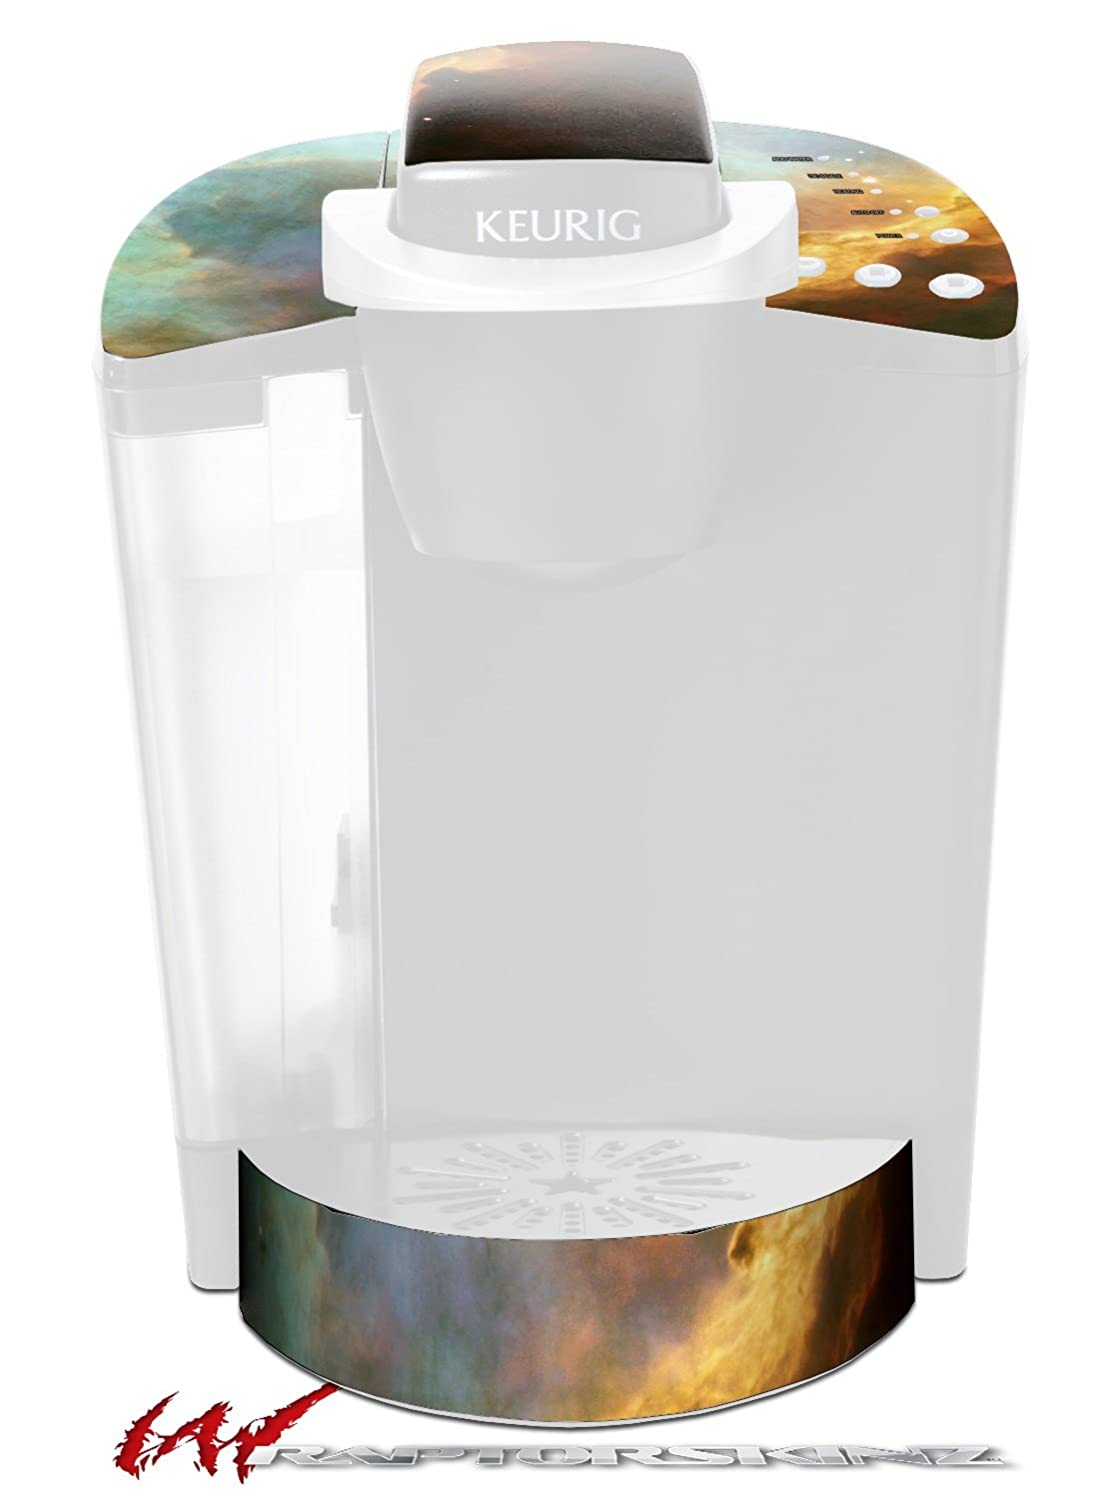 Hubbleイメージ – Gases in the omega-swan星雲 – デカールスタイルビニールスキンFits Keurig k40 Eliteコーヒーメーカー( Keurig Not Included )   B017AK36OY